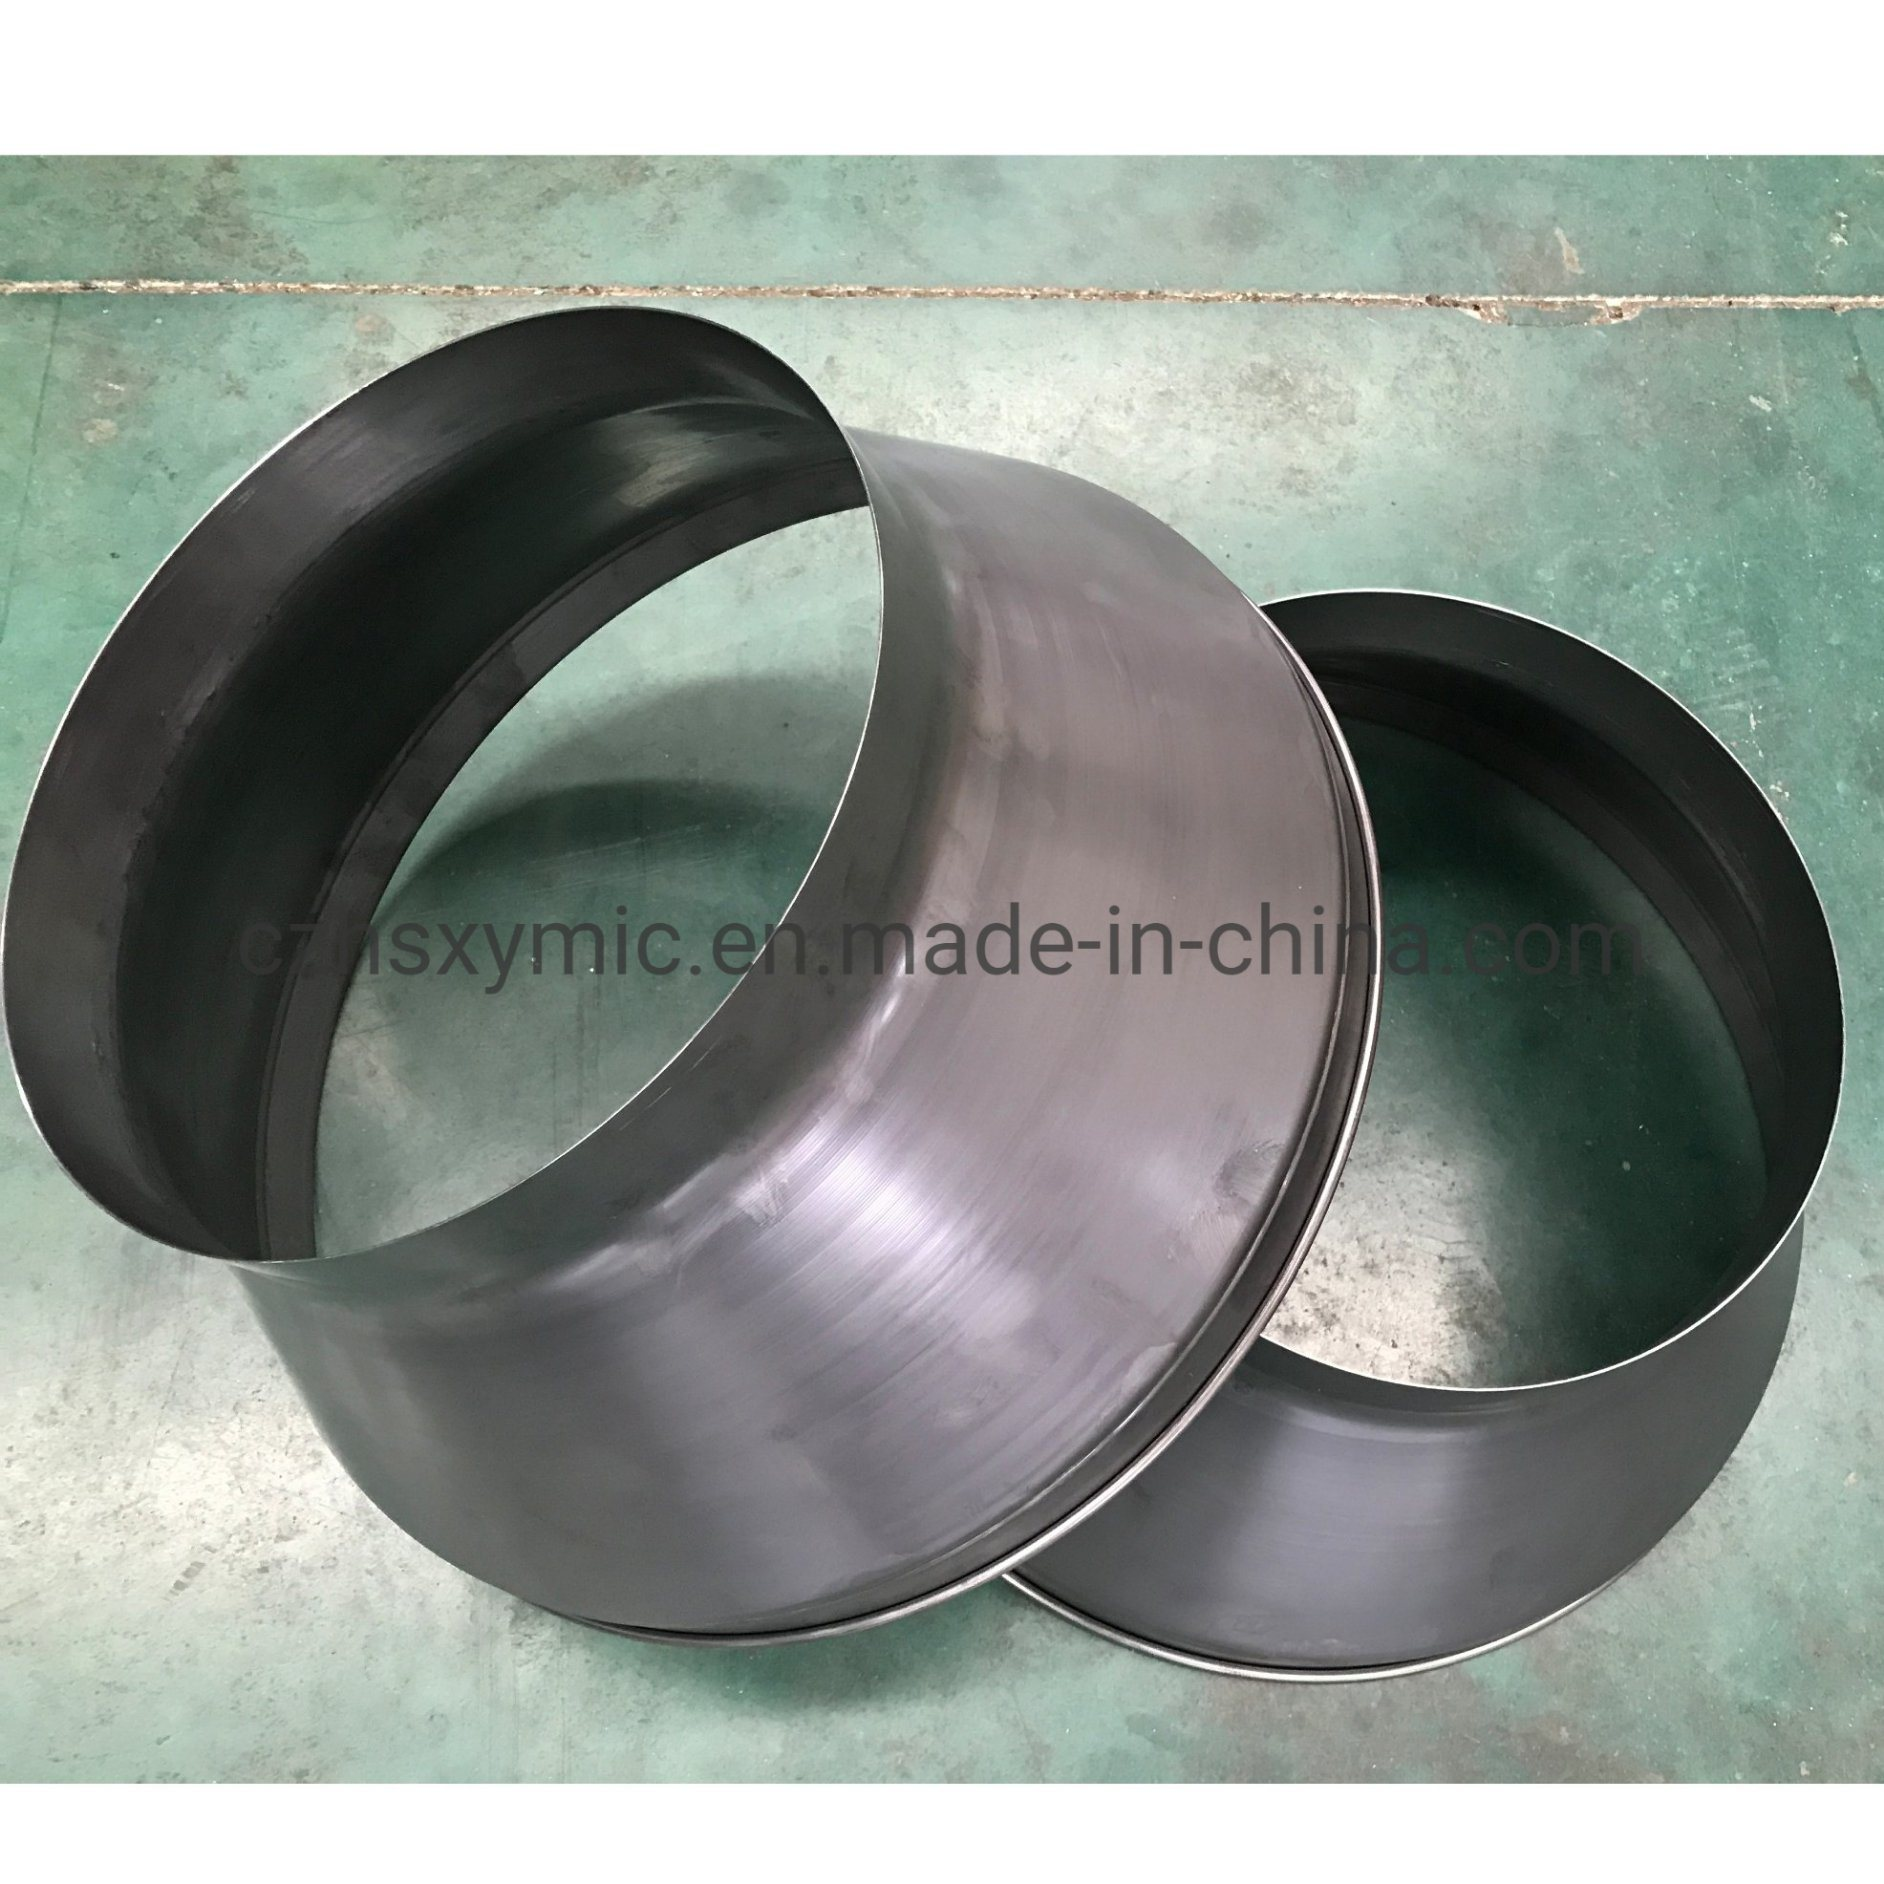 China Cheap Fresh Air Ventilation Inline Exhaust Fan Cover By Metal Spinning China Metal Stamping Metal Punching